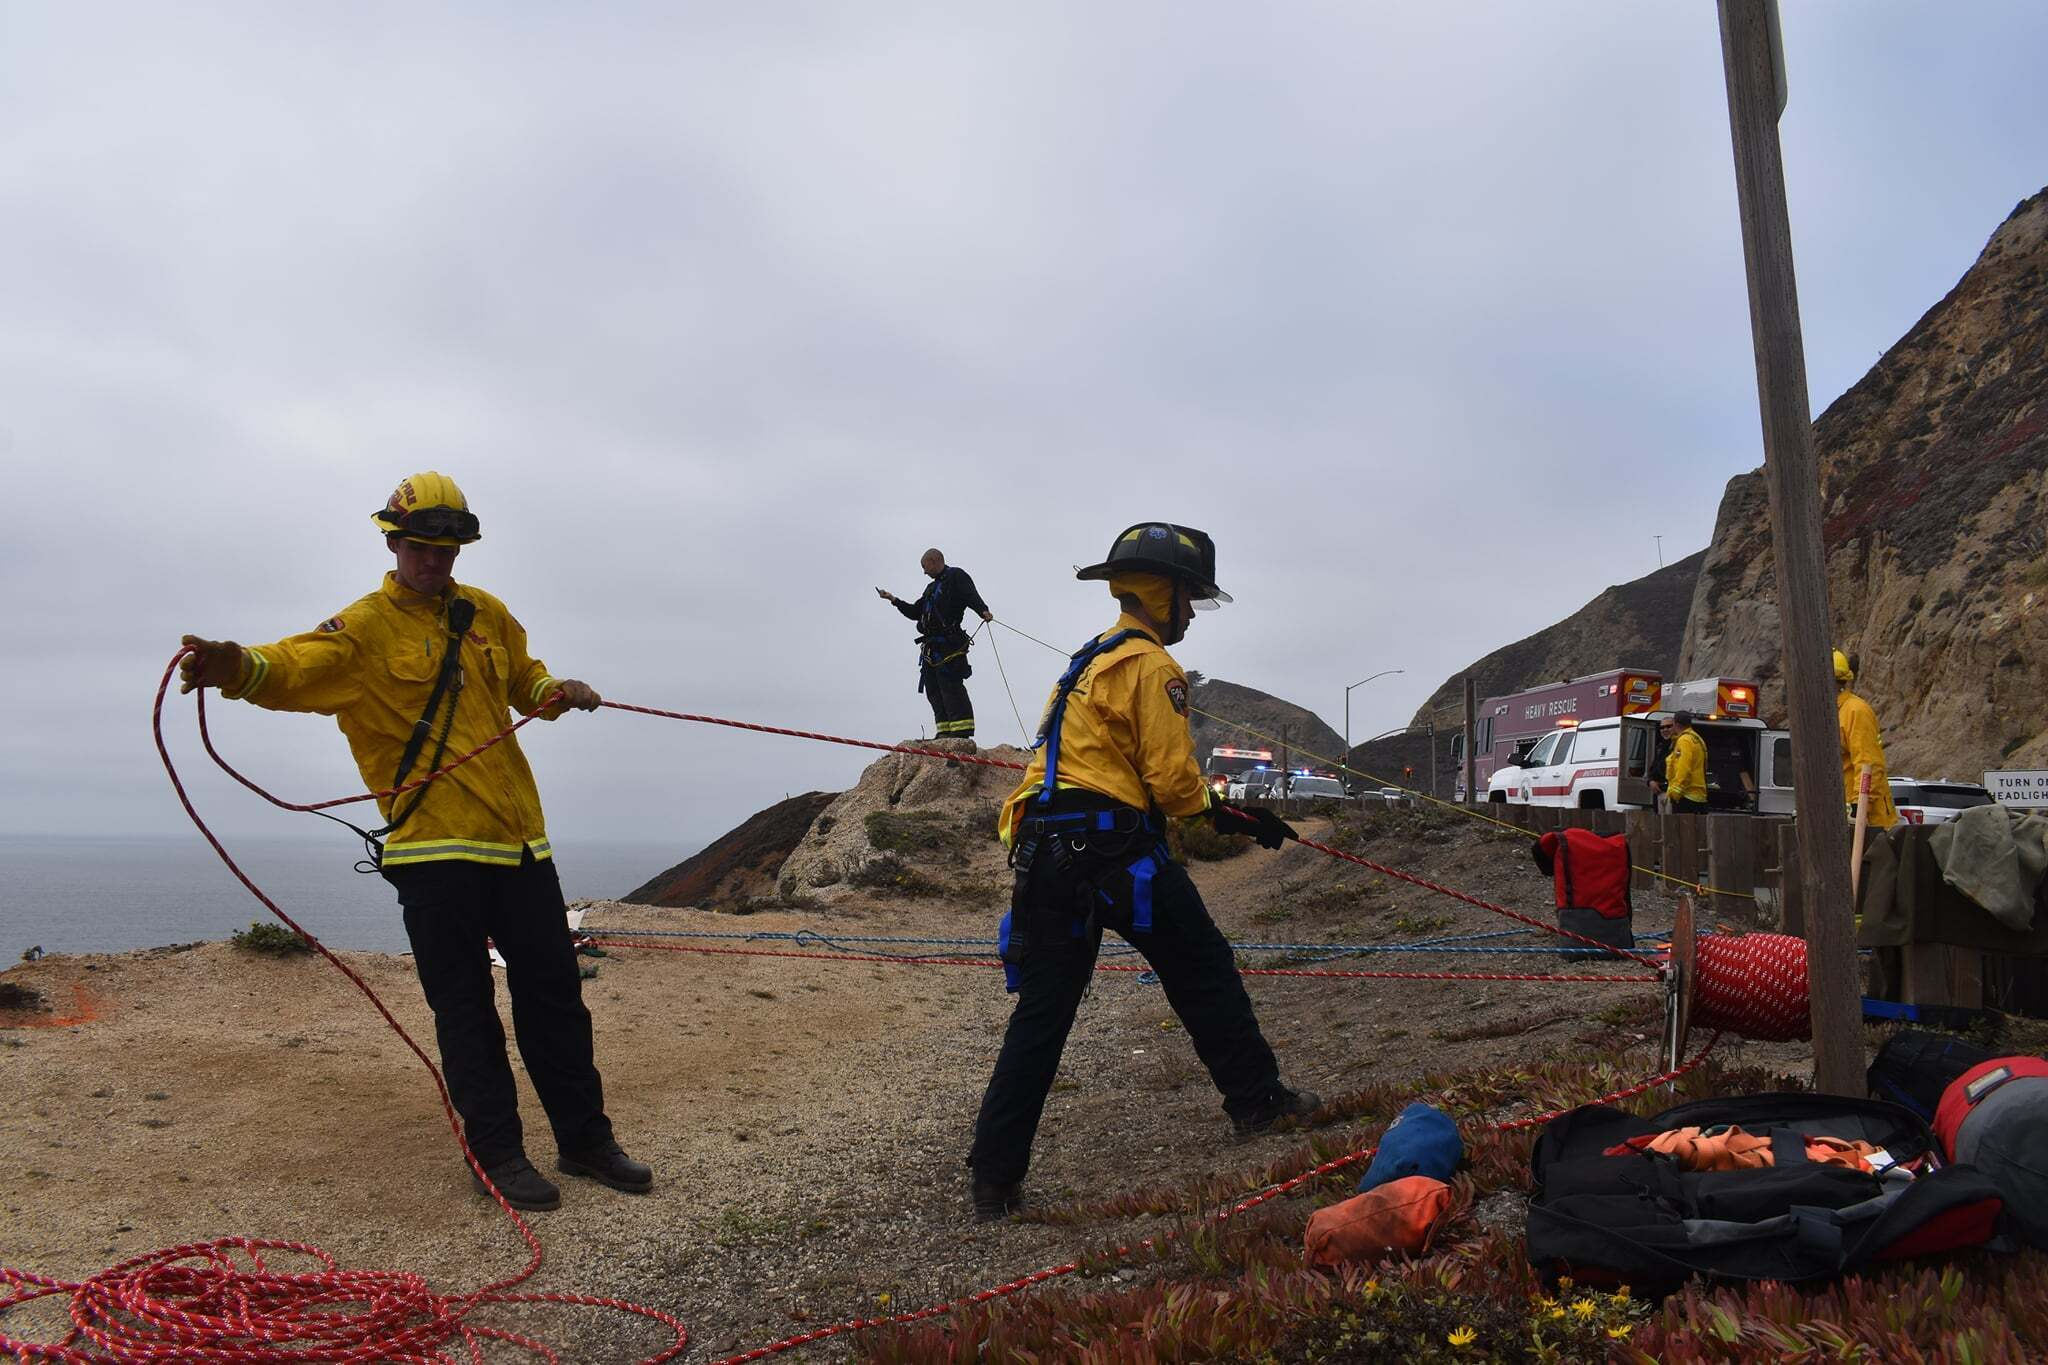 In this photo provided by Cal Fire San Mateo, Santa Cruz Unit firefighters recover a vehicle that plunged off a cliffside road killing a man south of San Francisco on Sept. 15, 2021. (CAL FIRE San Mateo - Santa Cruz Unit via Associated Press)